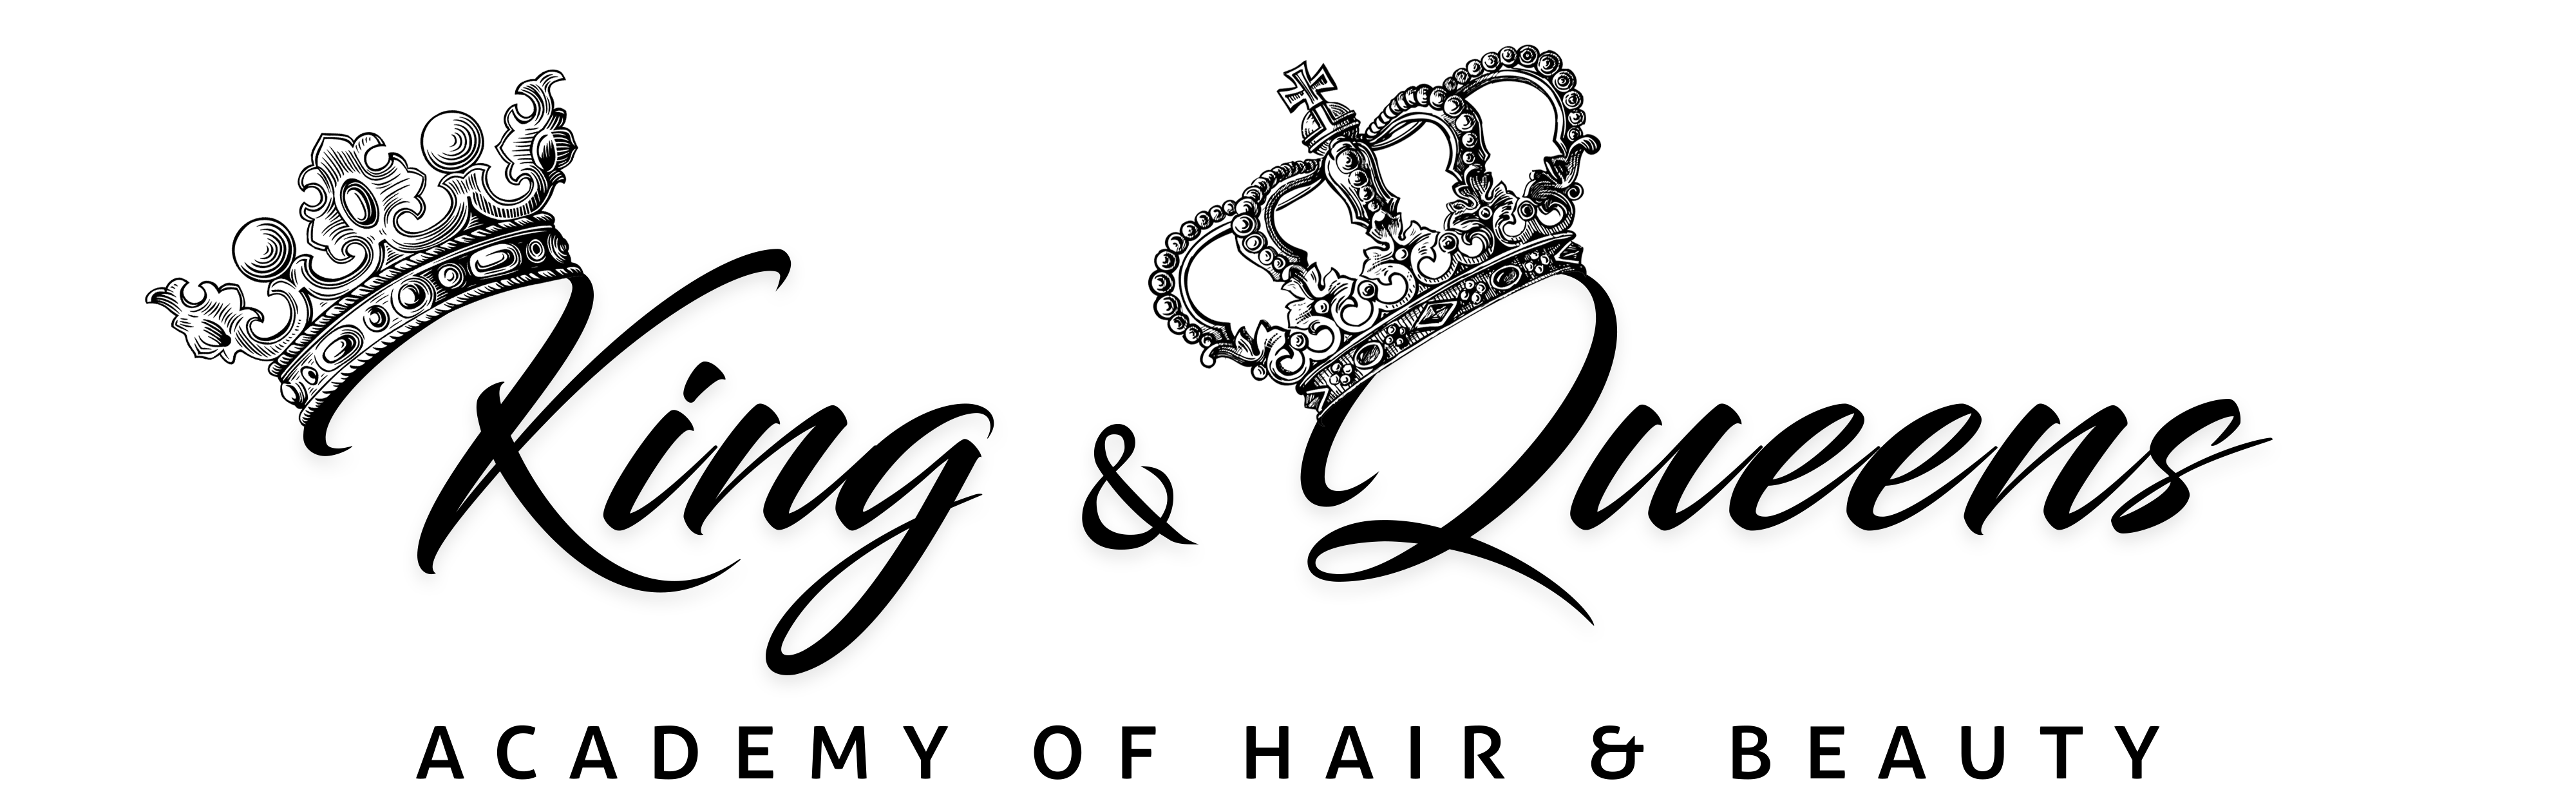 King and queen png. Queens logo transprent free